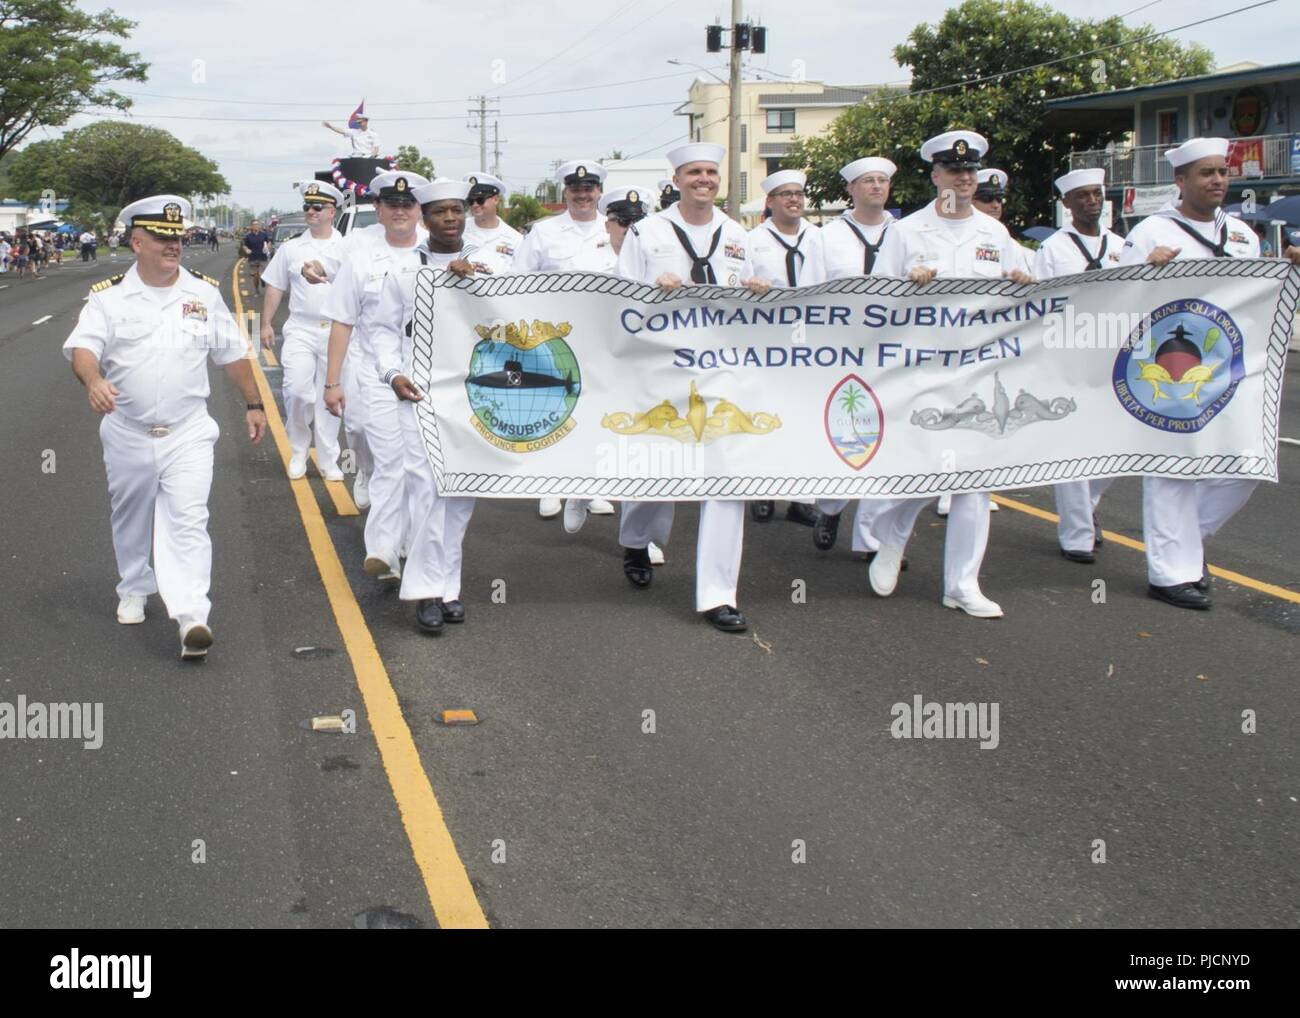 HAGATNA, Guam (July 21, 2018) – Sailors from Commander, Submarine Squadron 15 carry a banner during Guam's annual Liberation Day Parade in Hagatna, Guam, July 21. The 2018 Guam Liberation Parade celebrates the 74th anniversary of the liberation of Guam from Japanese occupation by U.S. forces during World War II. - Stock Image